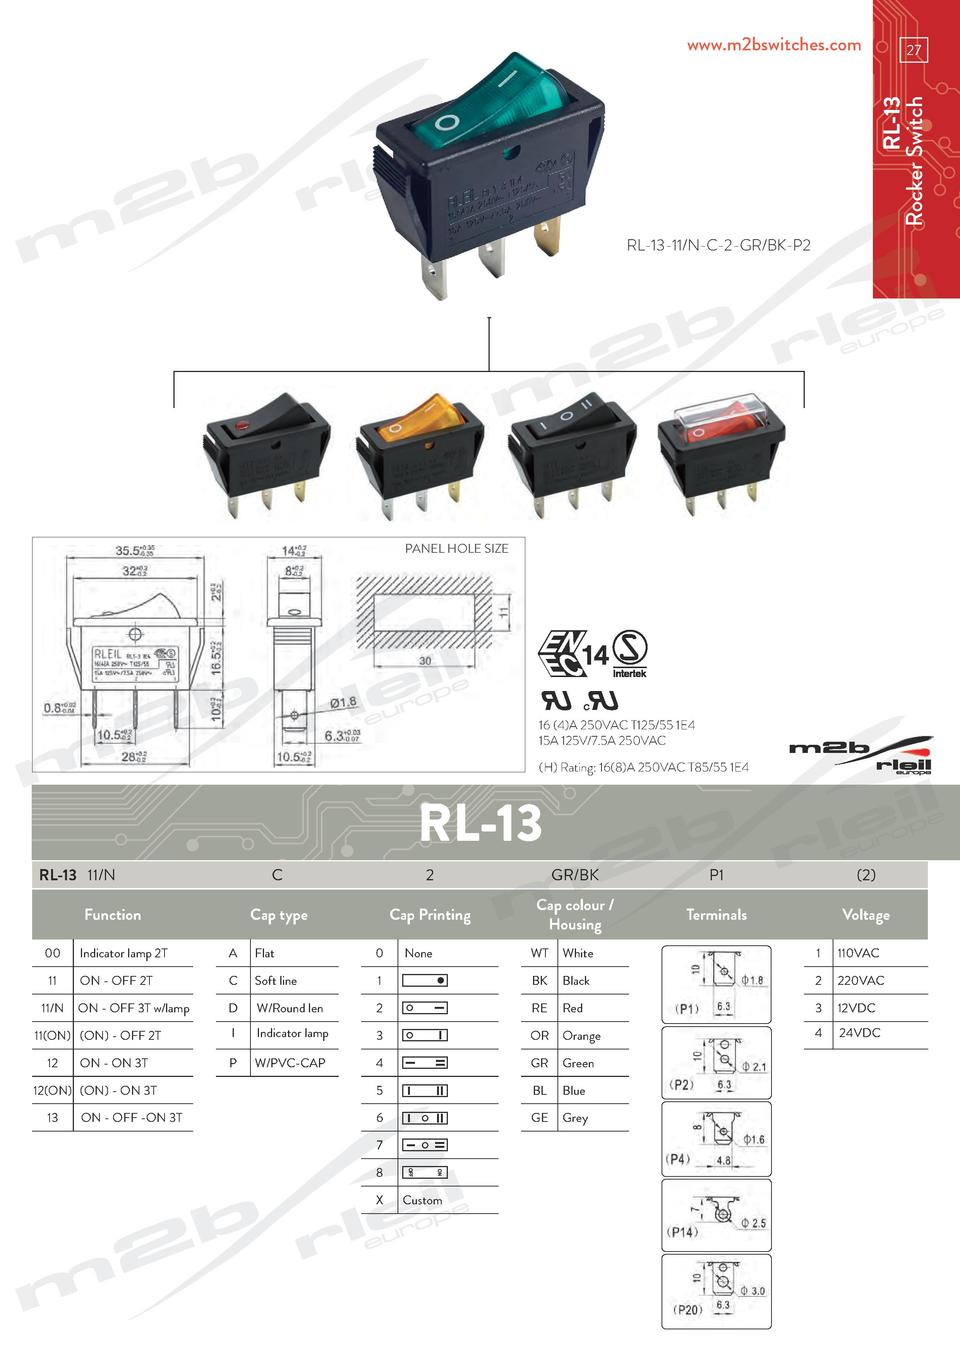 www.m2bswitches.com  RL-13 Rocker Switch  27  RL-13-11 N-C-2-GR BK-P2  PANEL HOLE SIZE  16  4 A 250VAC T125 55 1E4 15A 125...